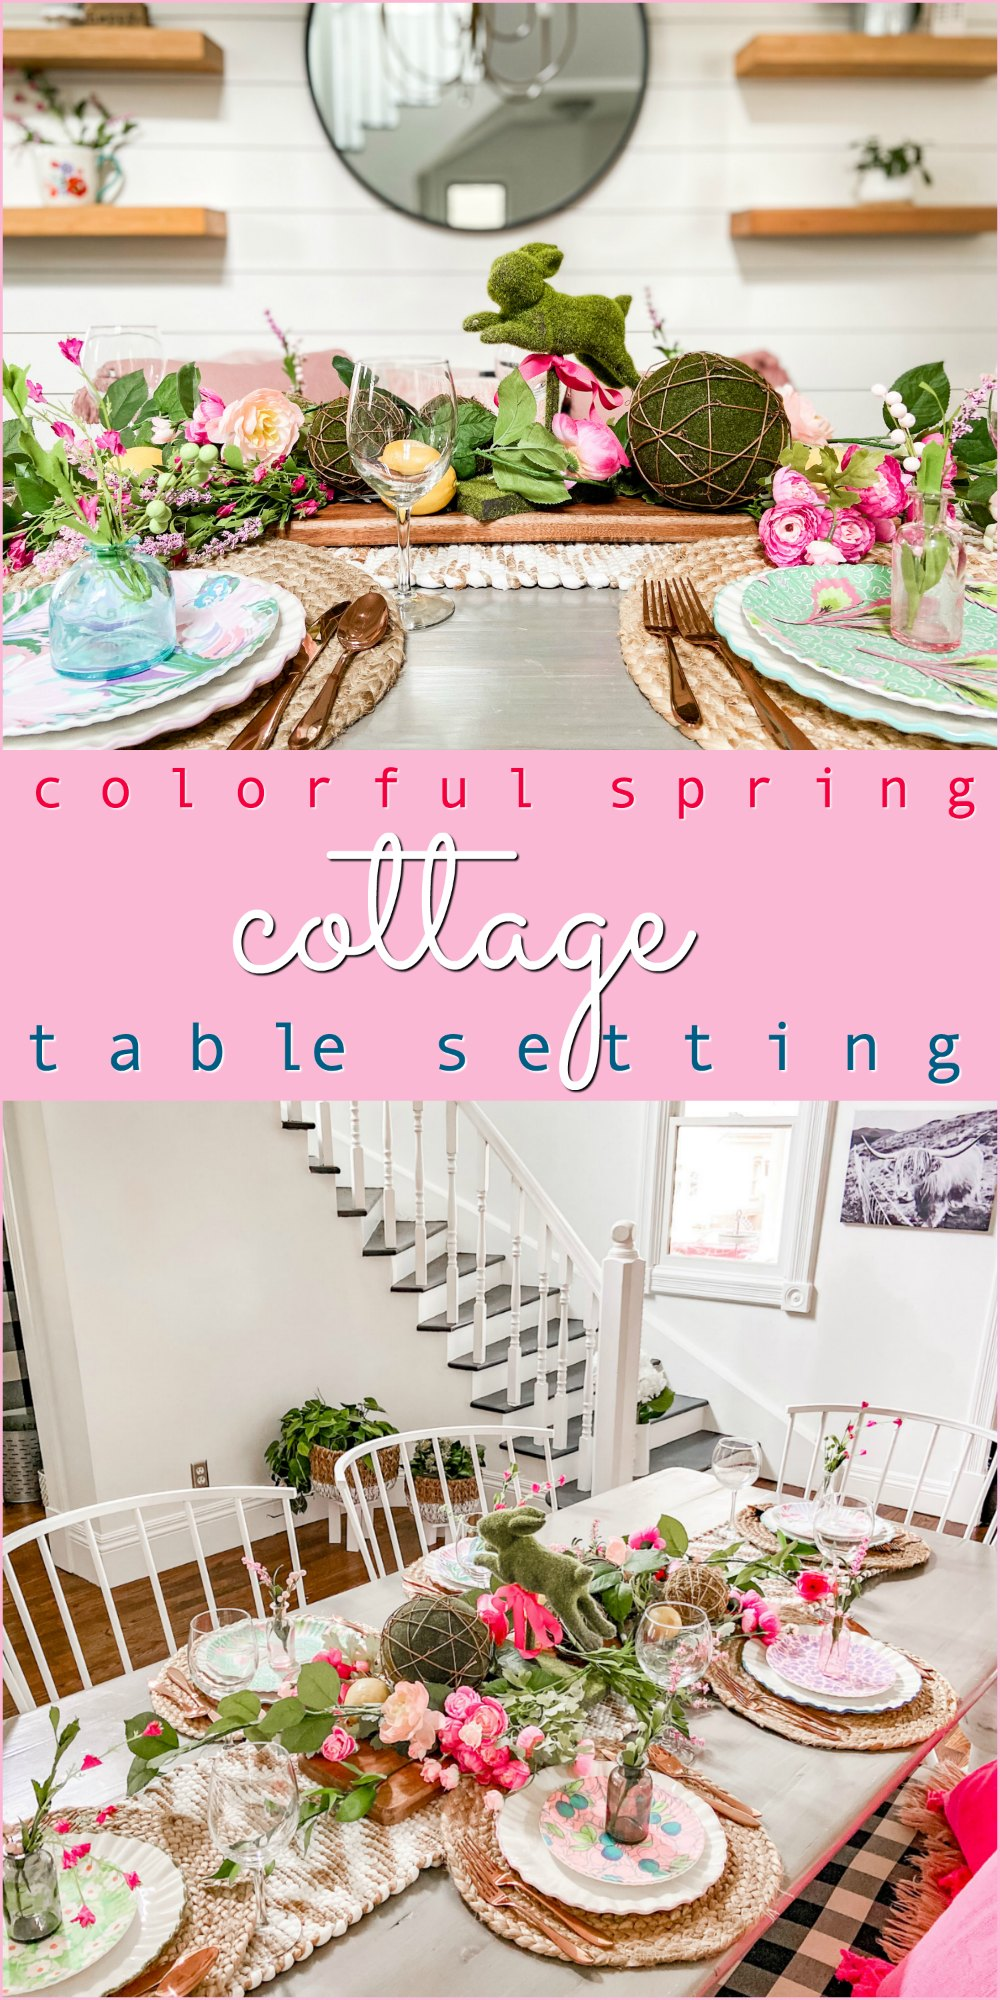 Colorful Spring Cottage Table Setting 22 Spring Table Ideas